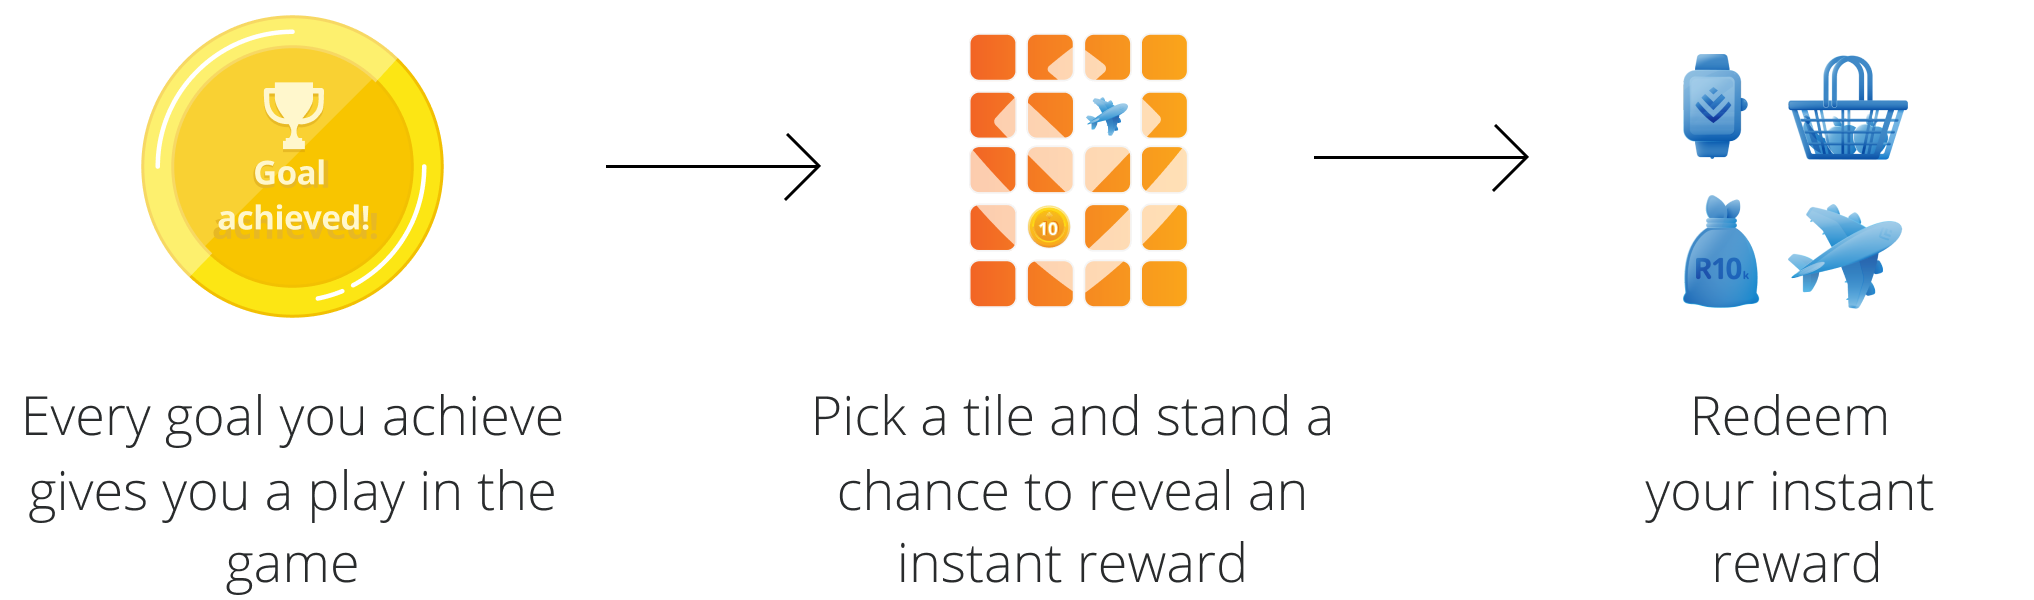 vitality active rewards discovery